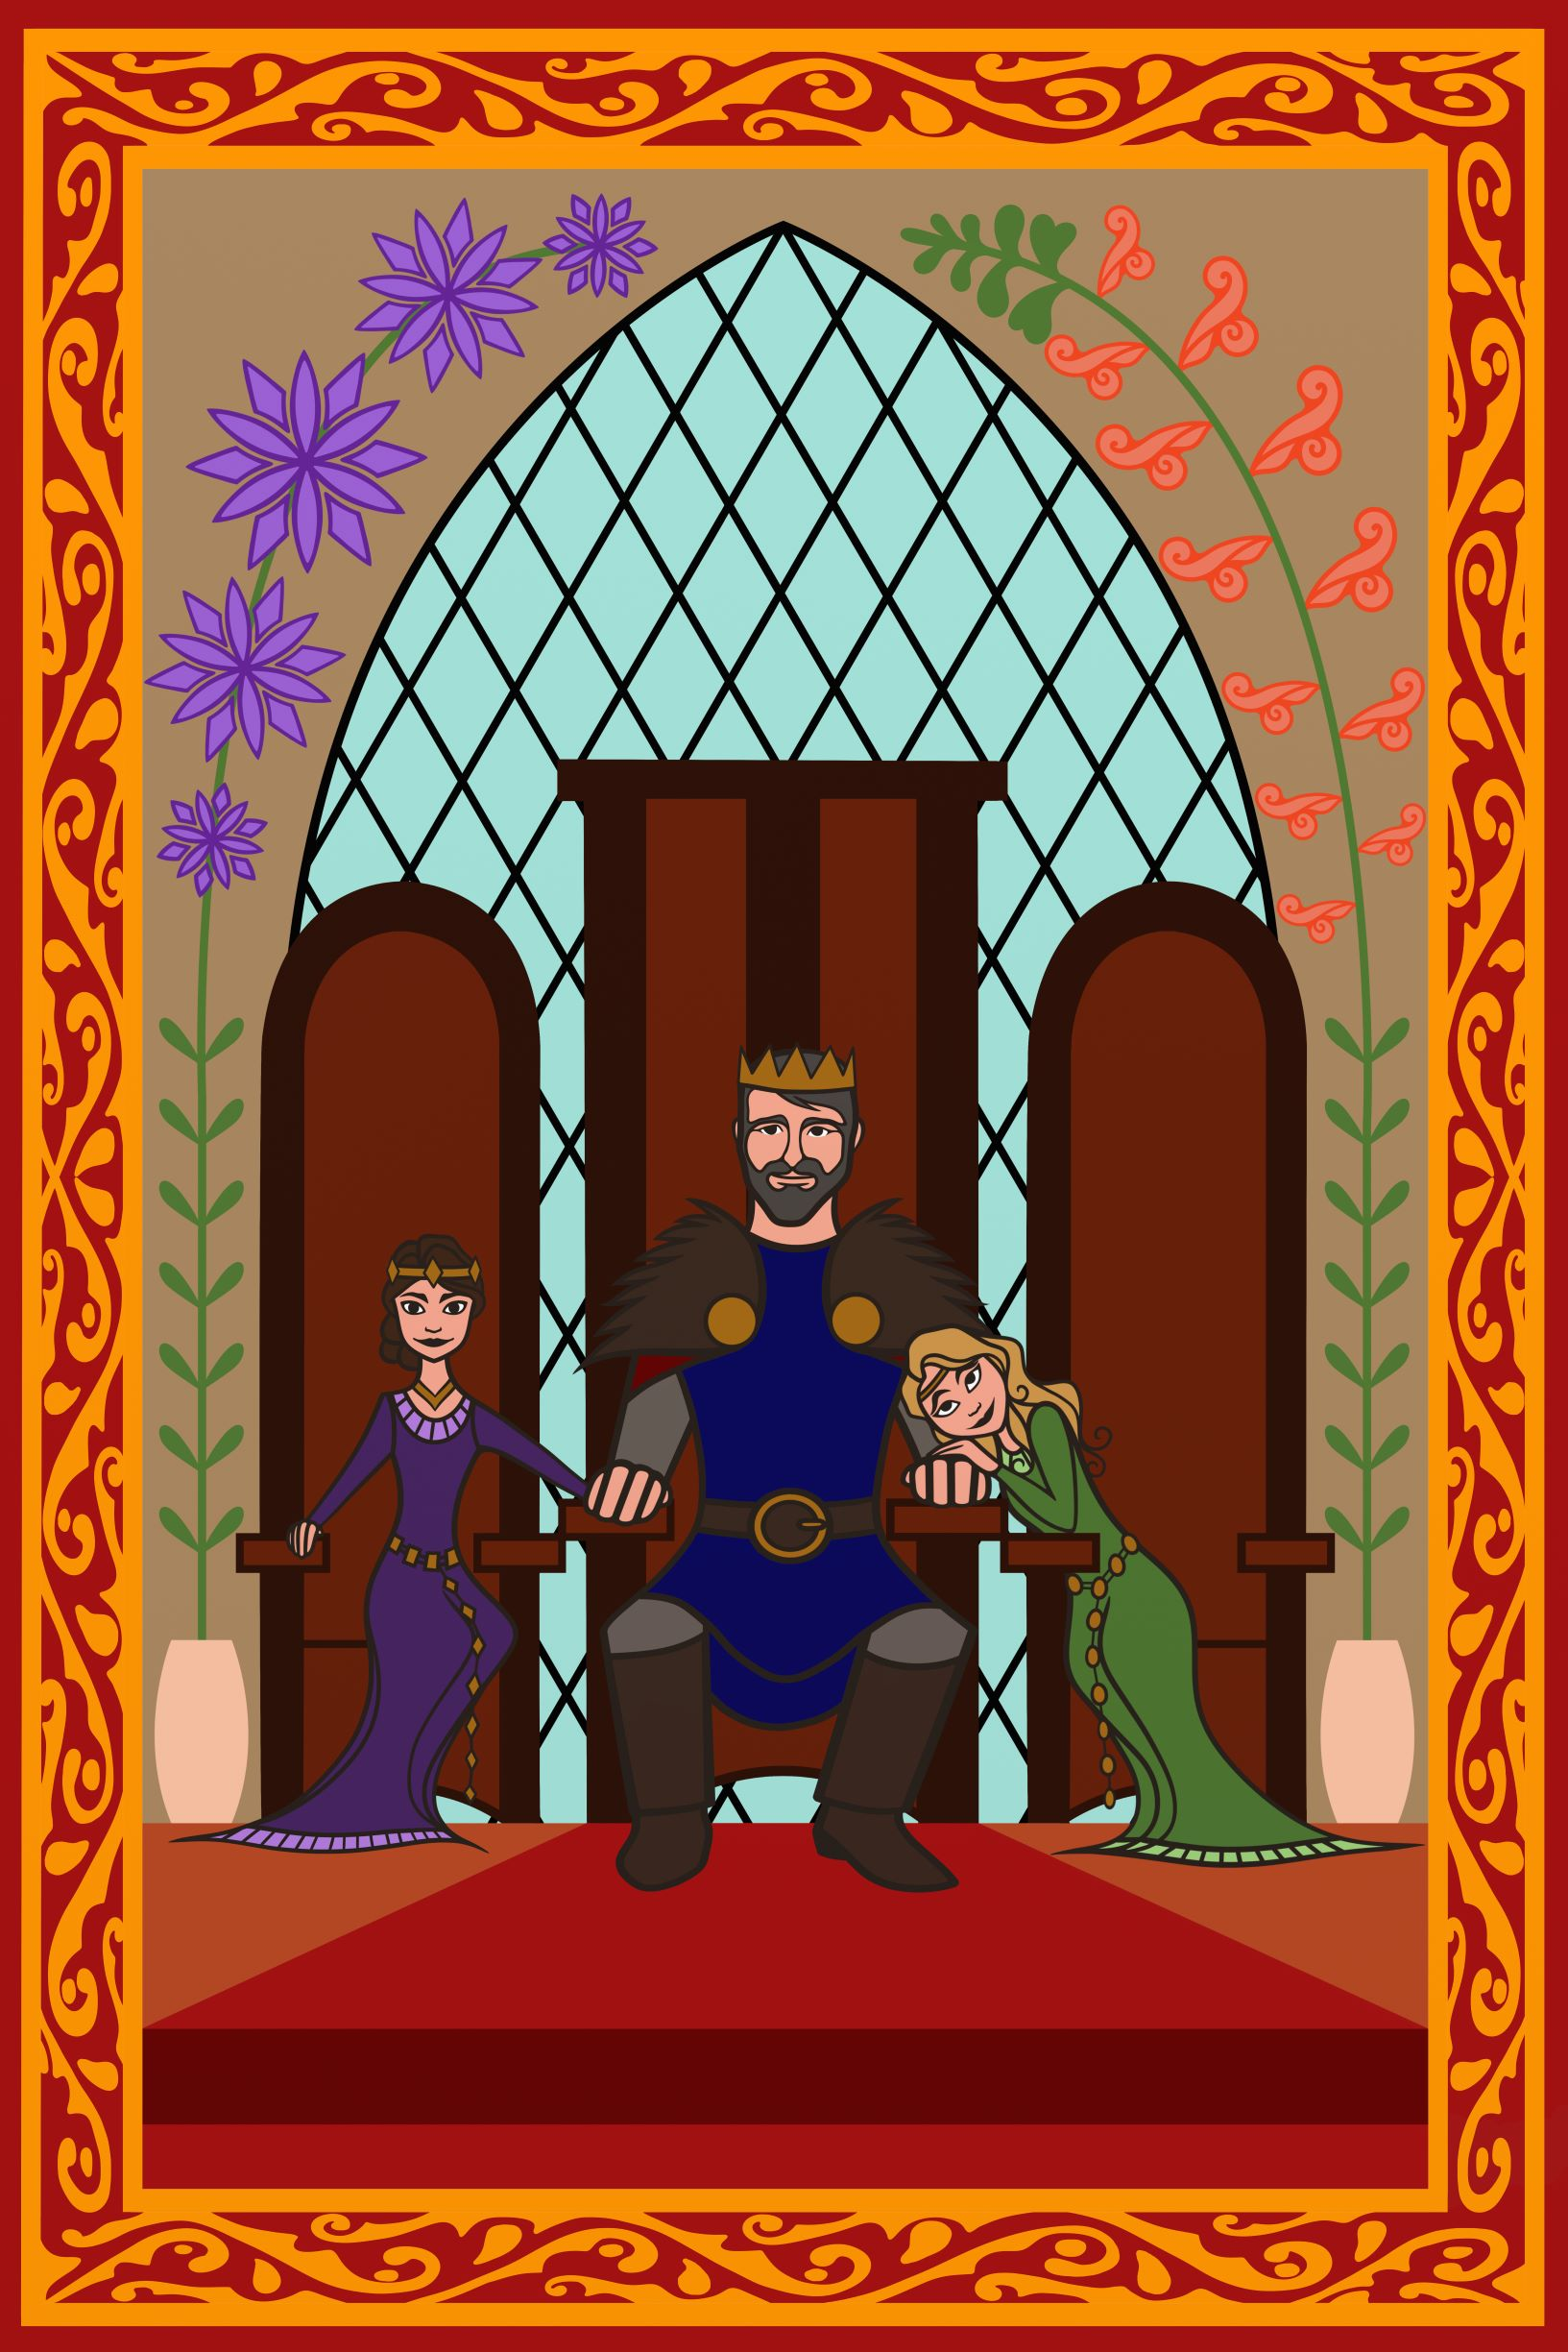 Early concept art for a tapestry featuring King Cedric and his daughters Chrysanthemum (left) and Snapdragon (right)  Copyright AD33 Productions 2018